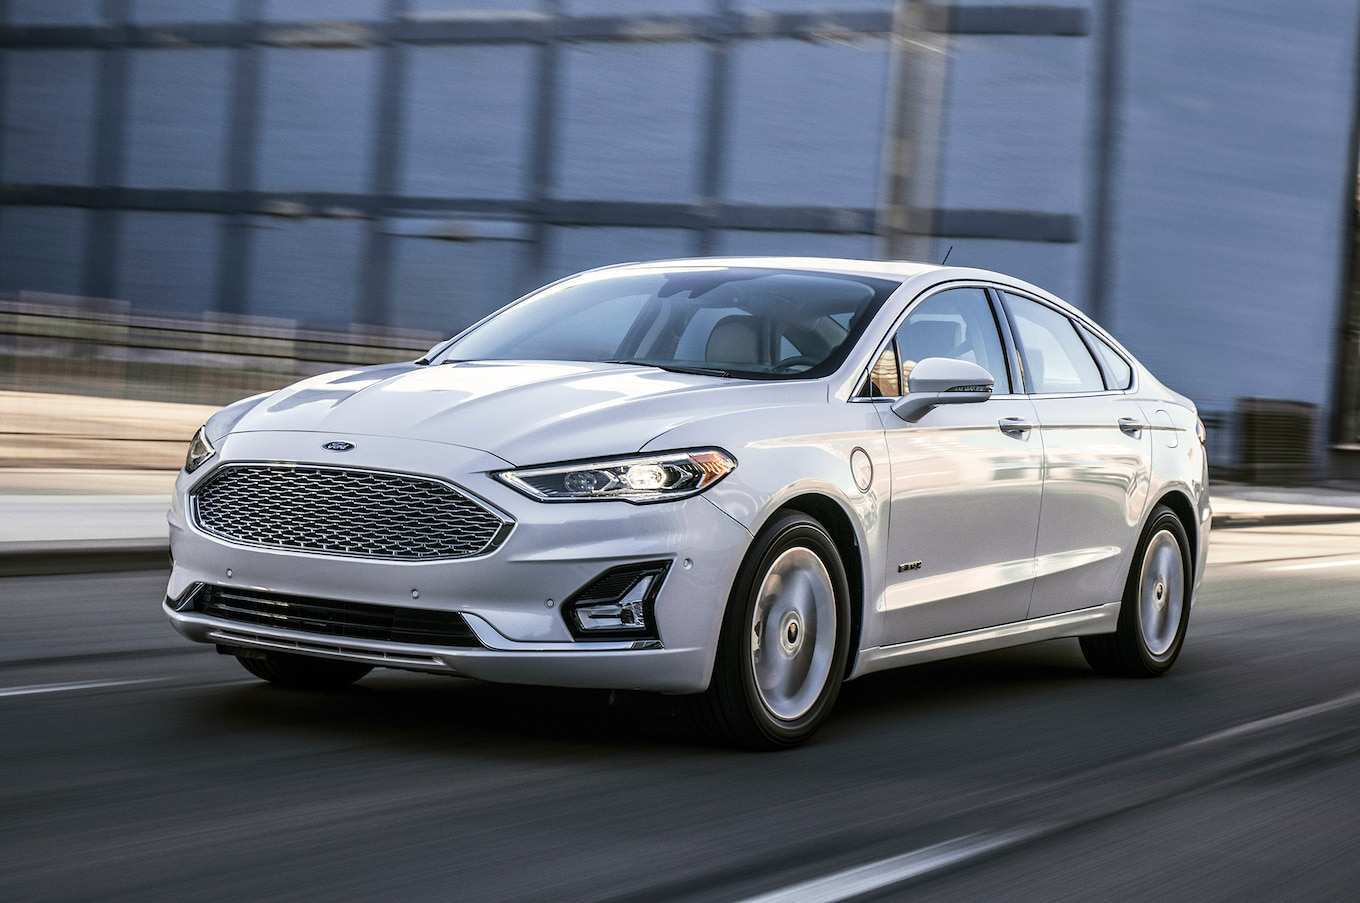 18 The Best 2019 Ford Fusion Energi Release Date